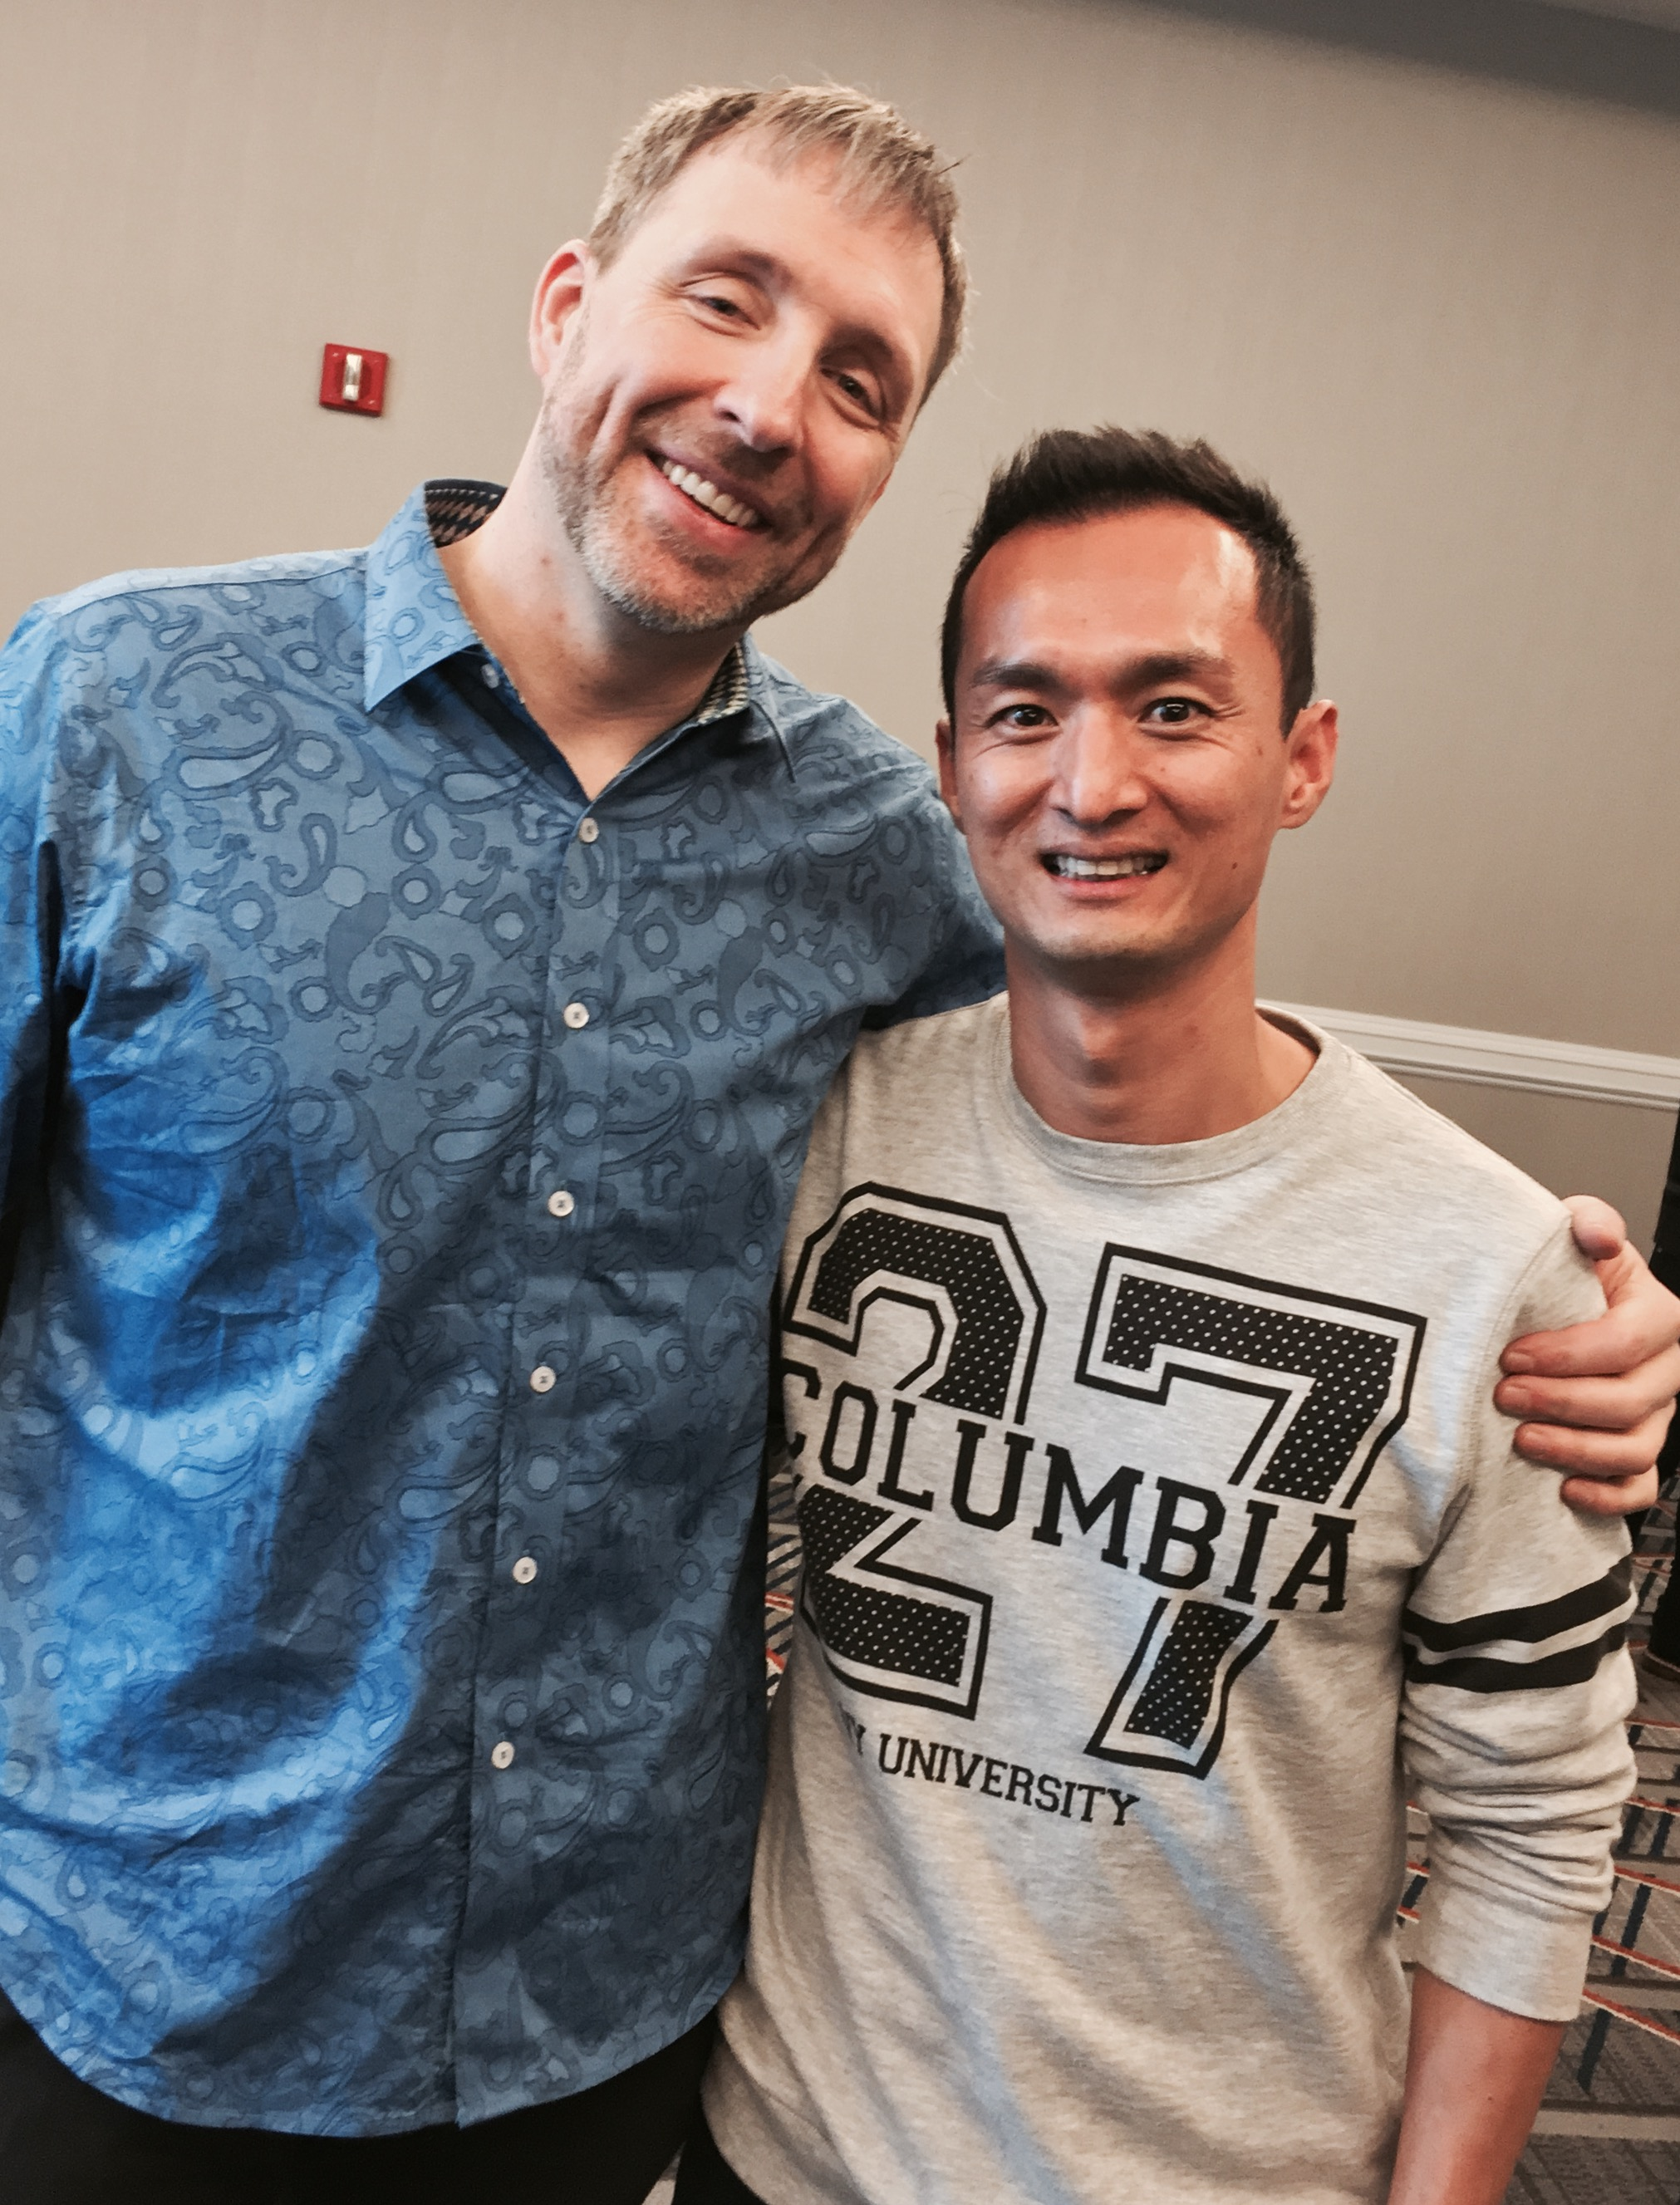 The organiser of Bulletproof Living in Melbourne with Dave Asprey